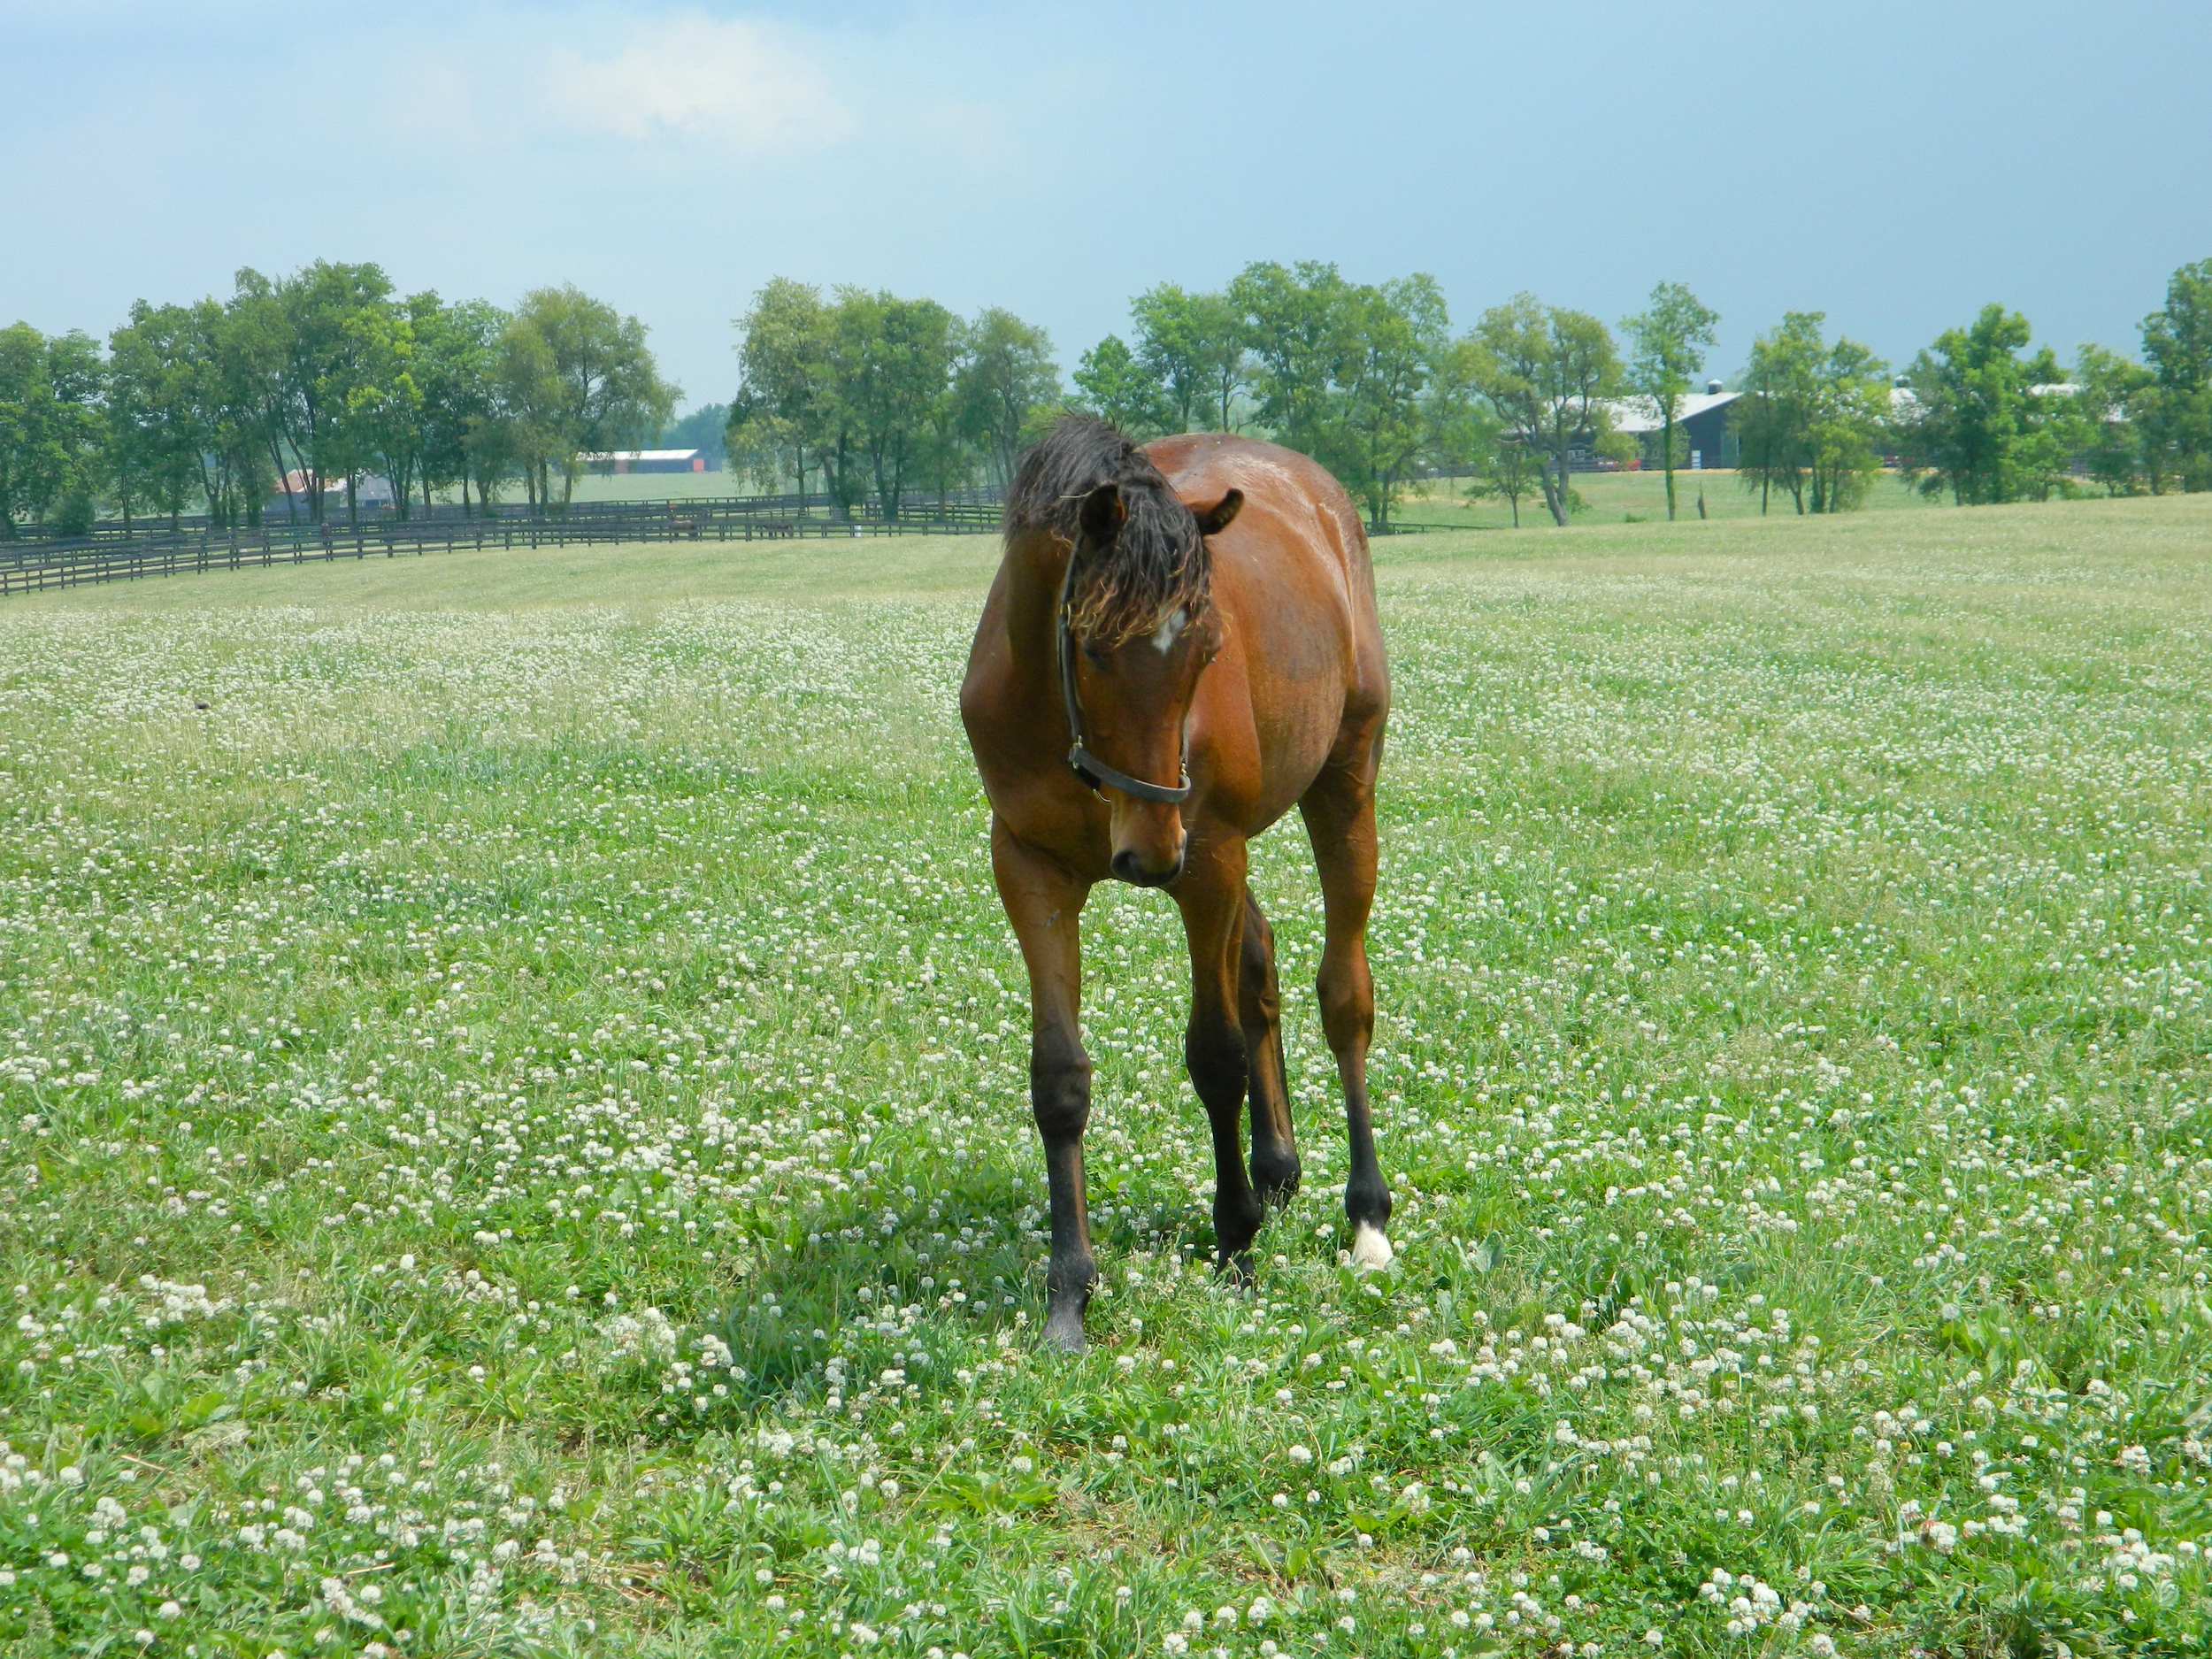 Year old colt in a Kentucky pasture. His body expression says everything about the breed.